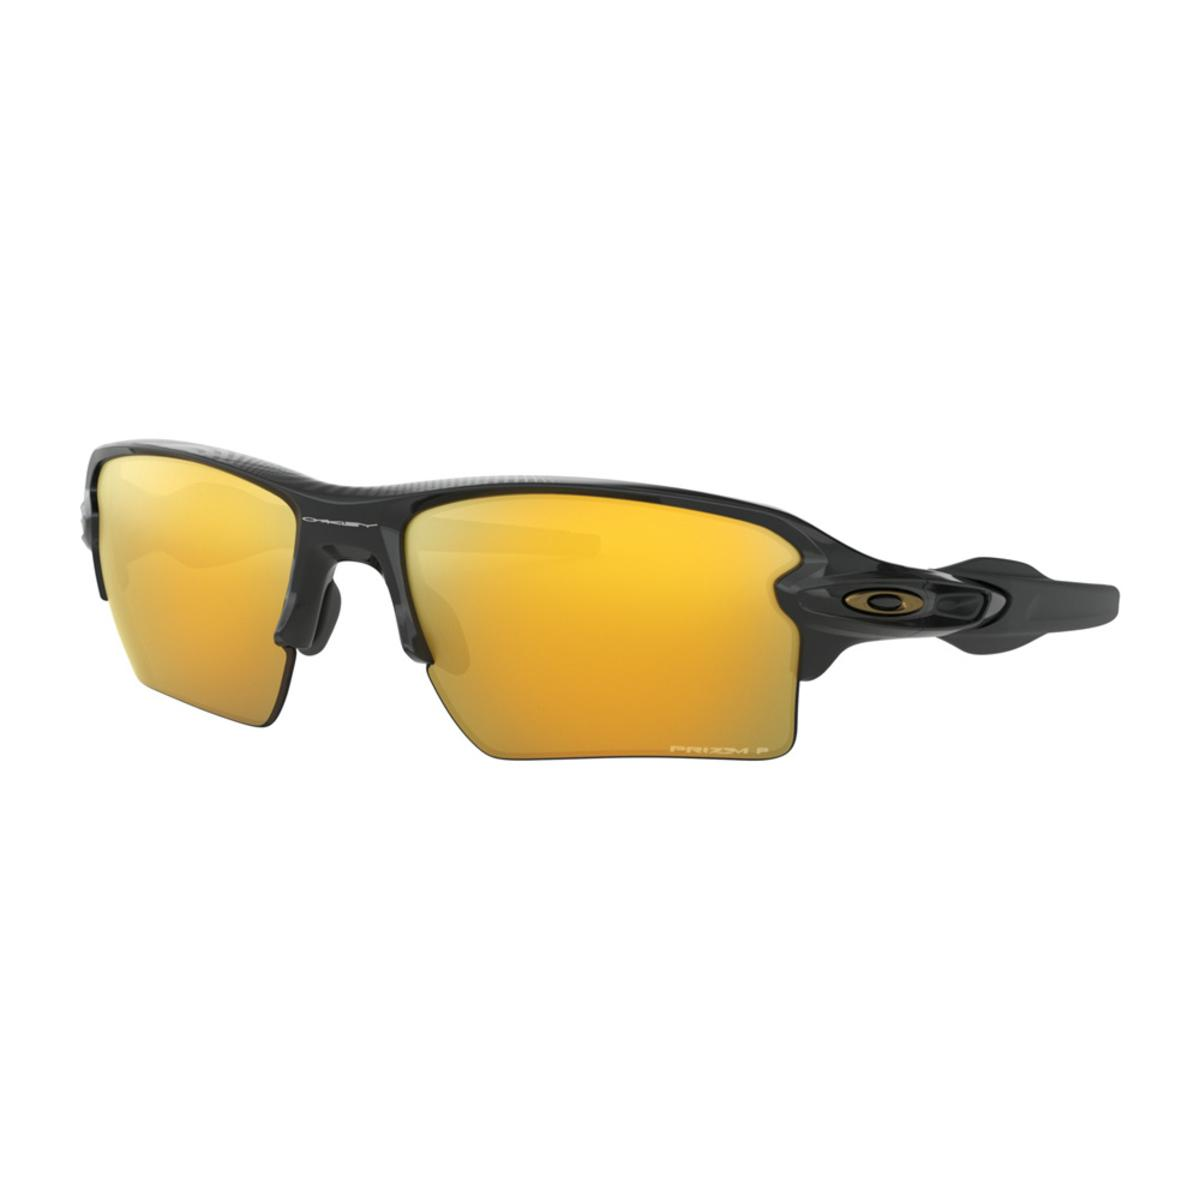 5979ed92b03e4 Oakley Flak 2.0 XL Midnight Collection Polished Black Sunglasses w Prizm  24k Polarized - The Warming Store